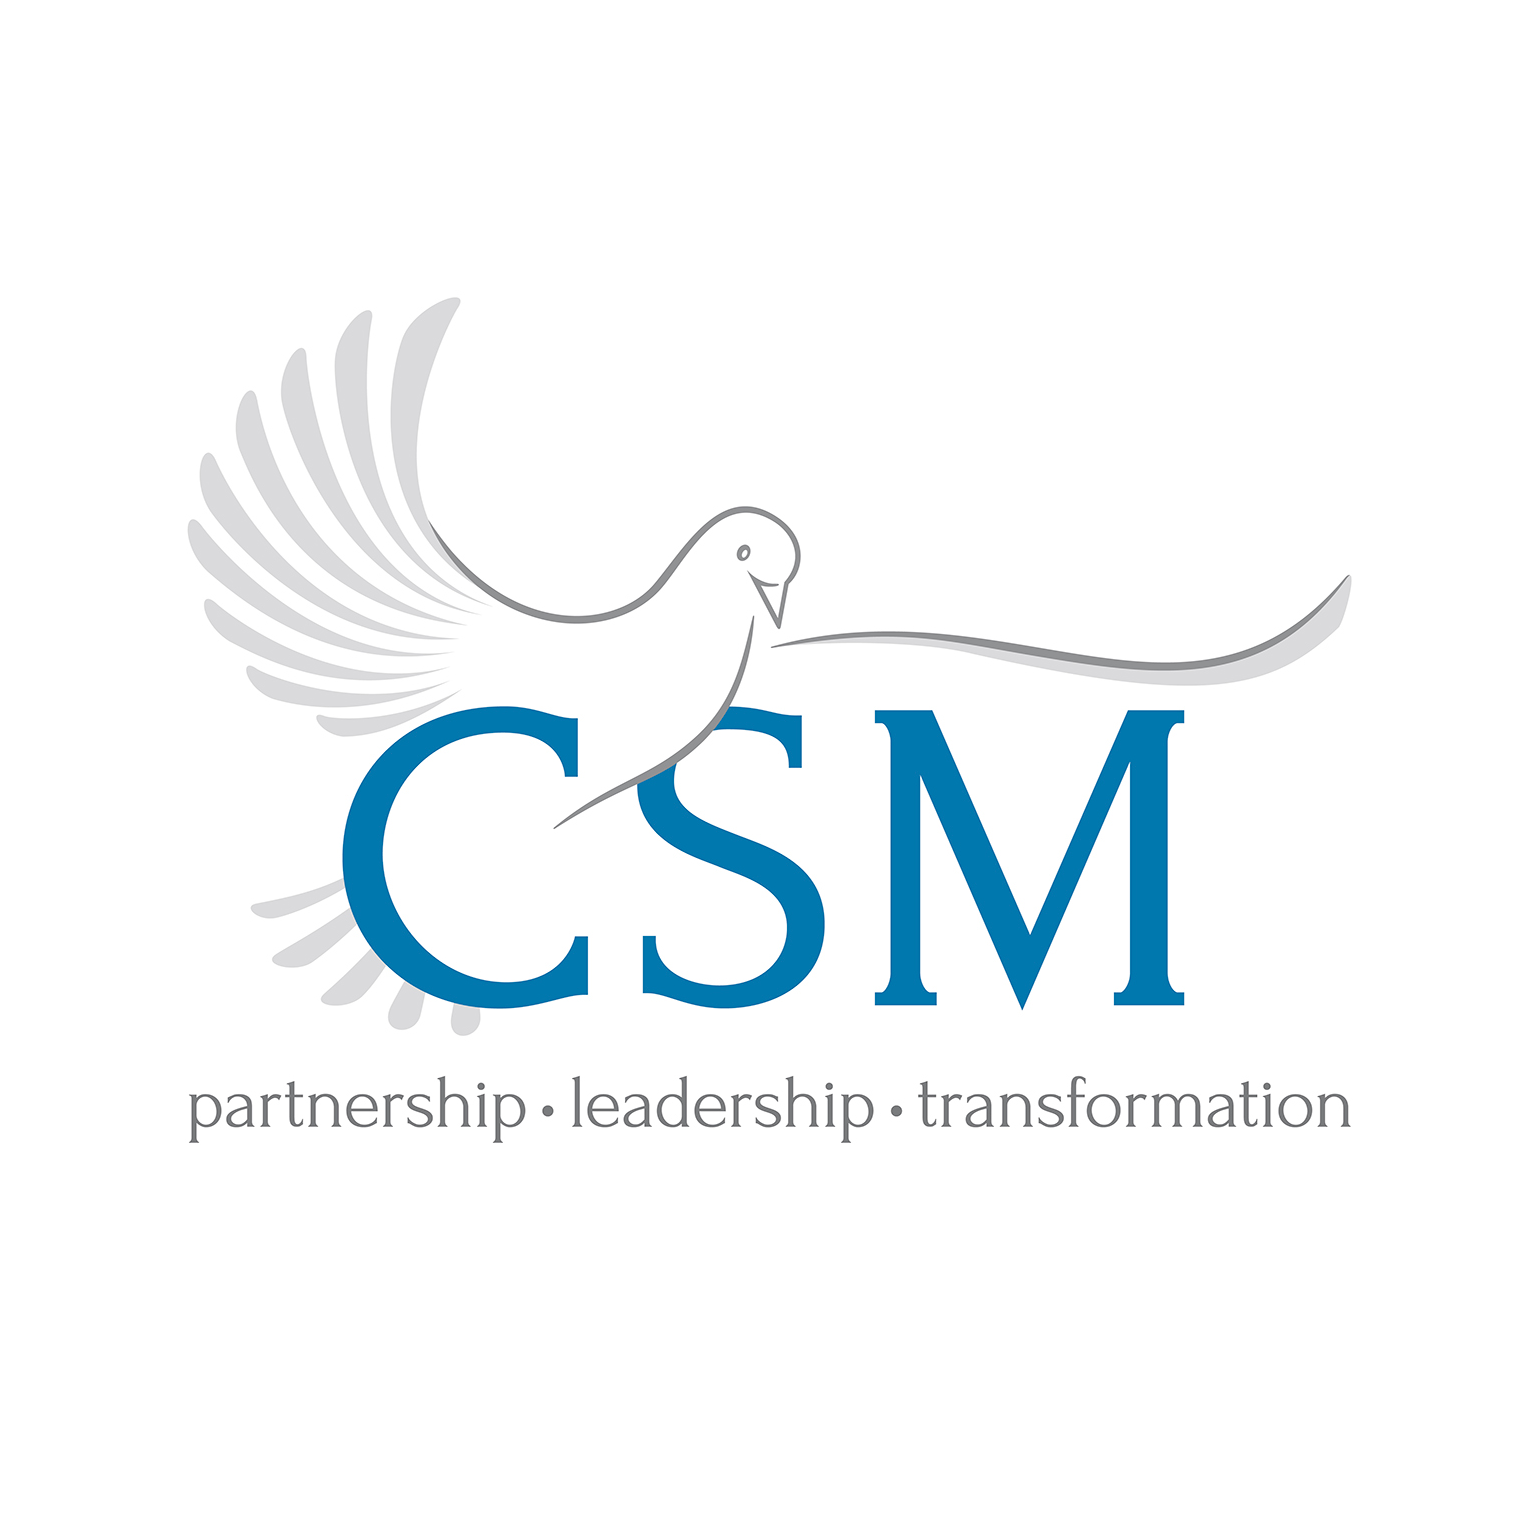 A dove representing the Holy Spirit with CSM superimposed